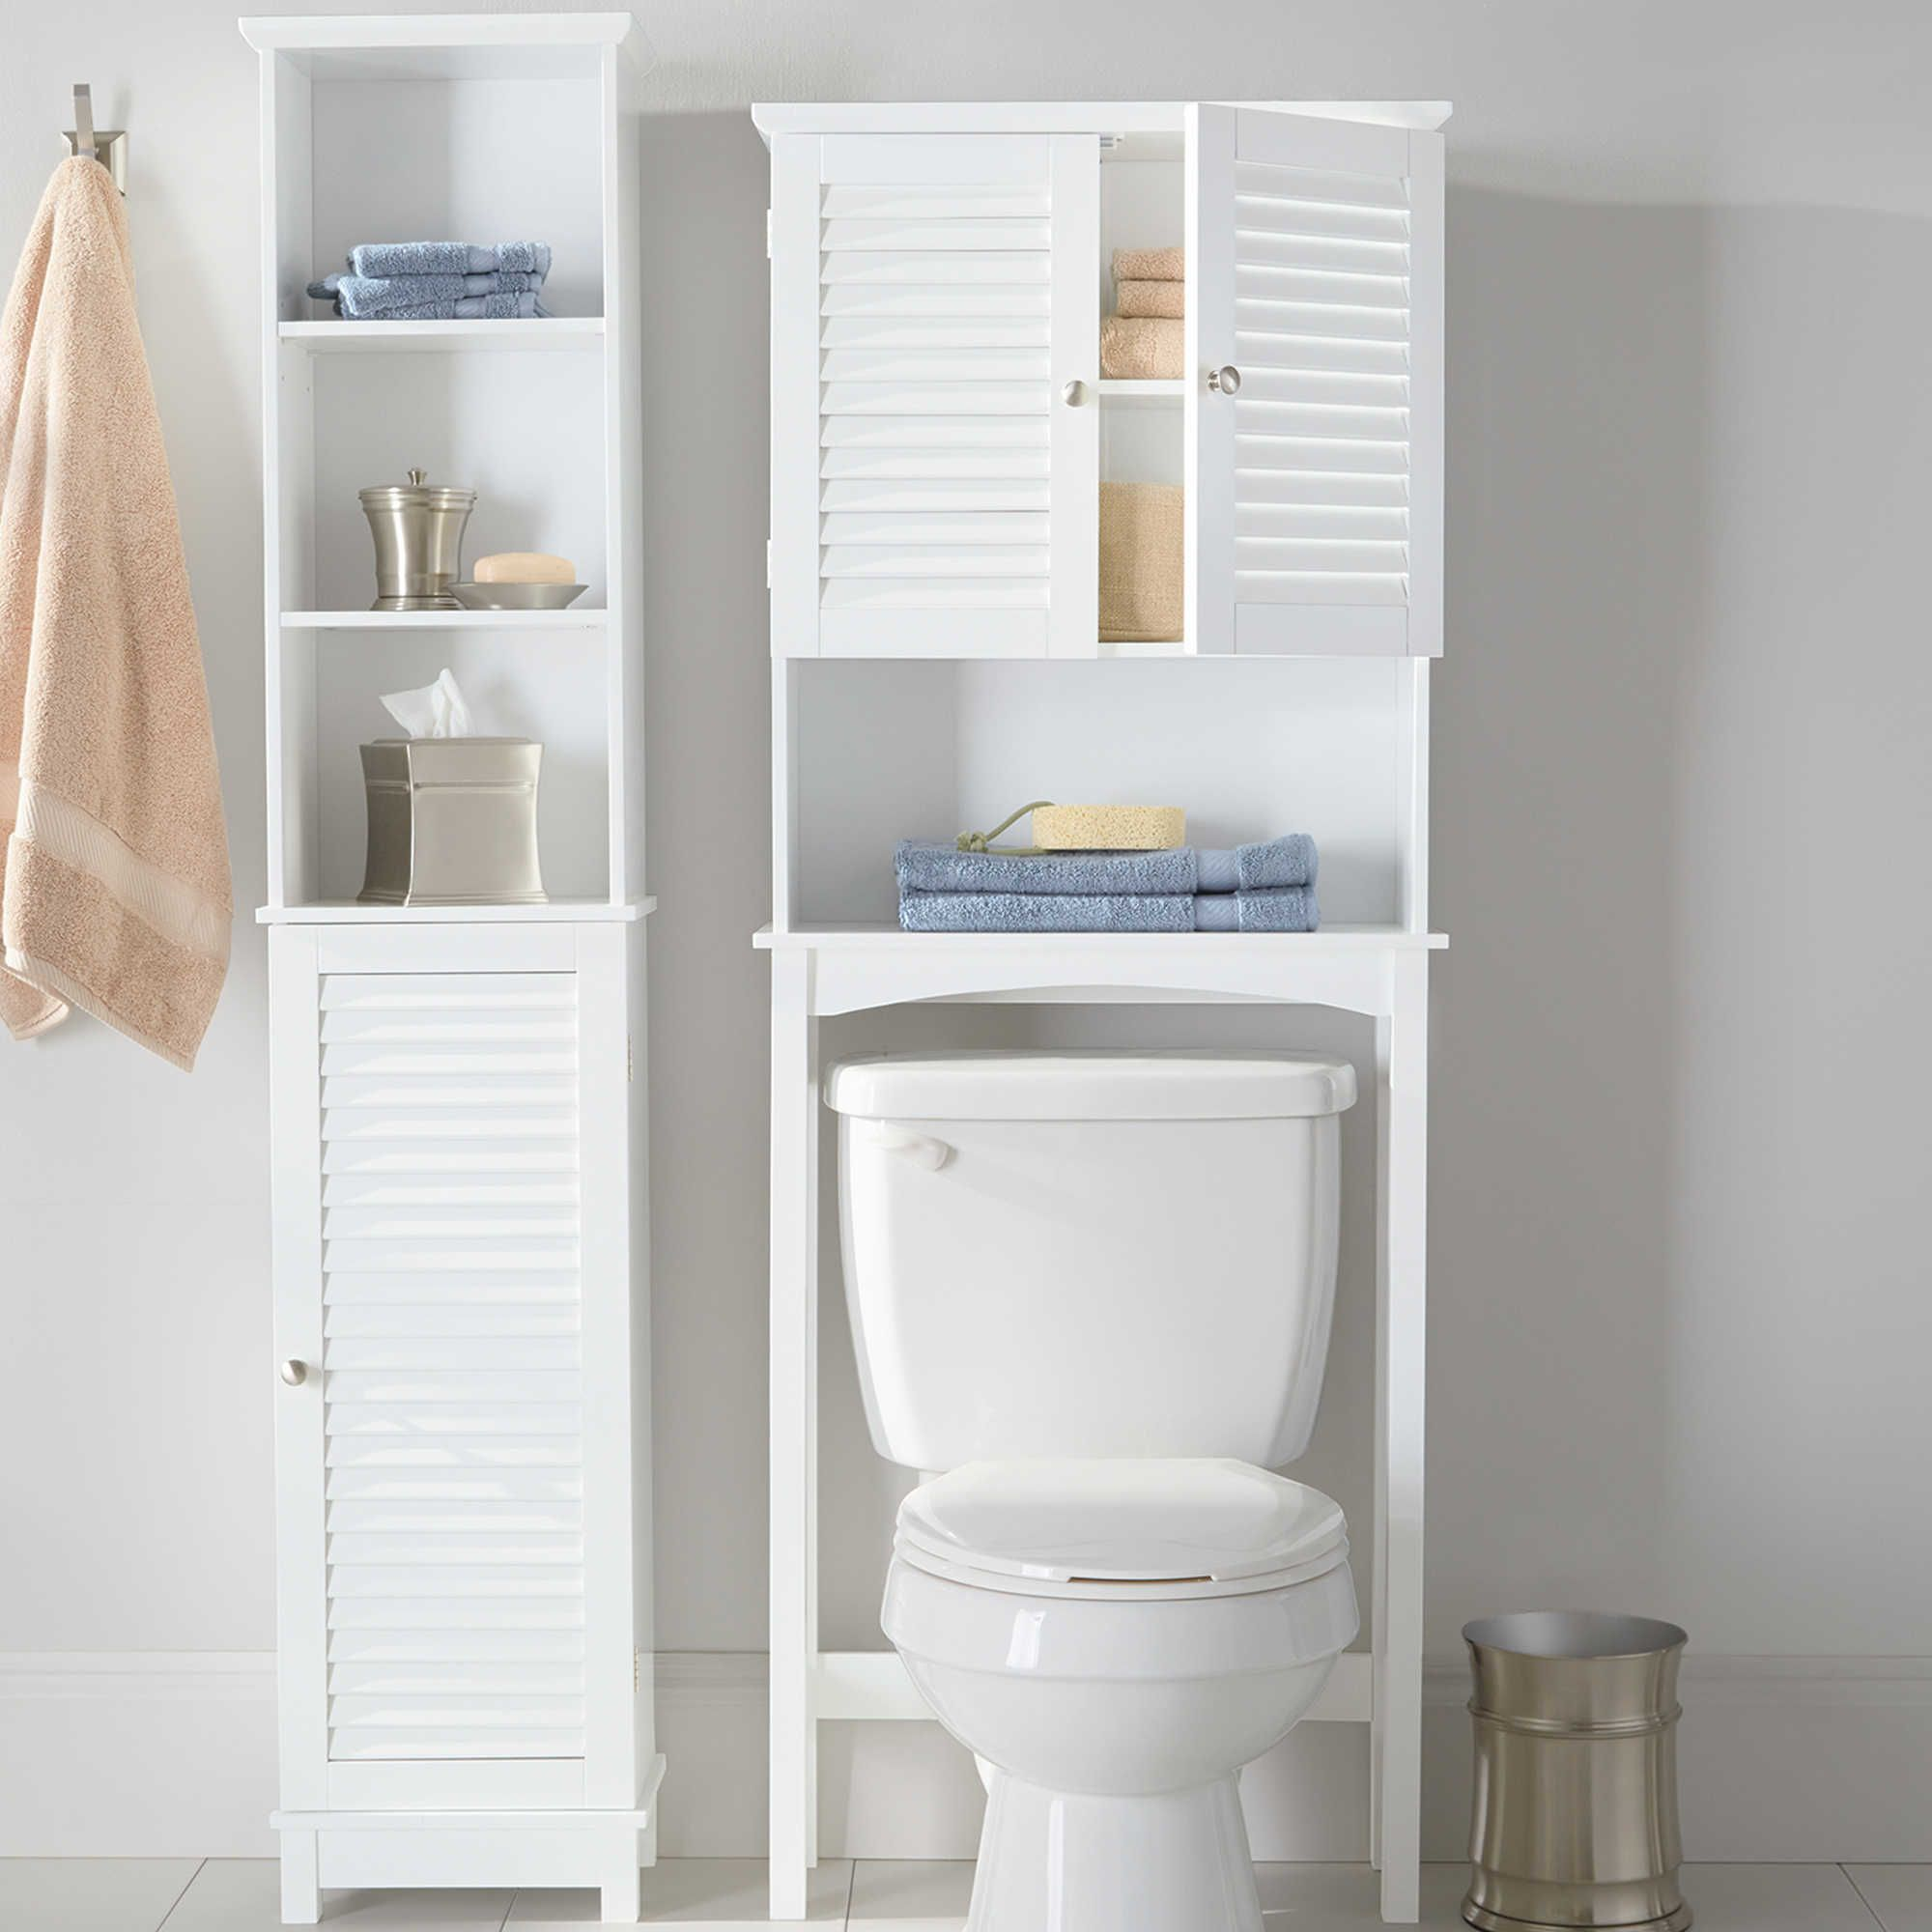 Summit Over The Toilet Space Saver Tower Bed Bath Beyond Bath Furniture Small Bathroom Small Bathroom Decor